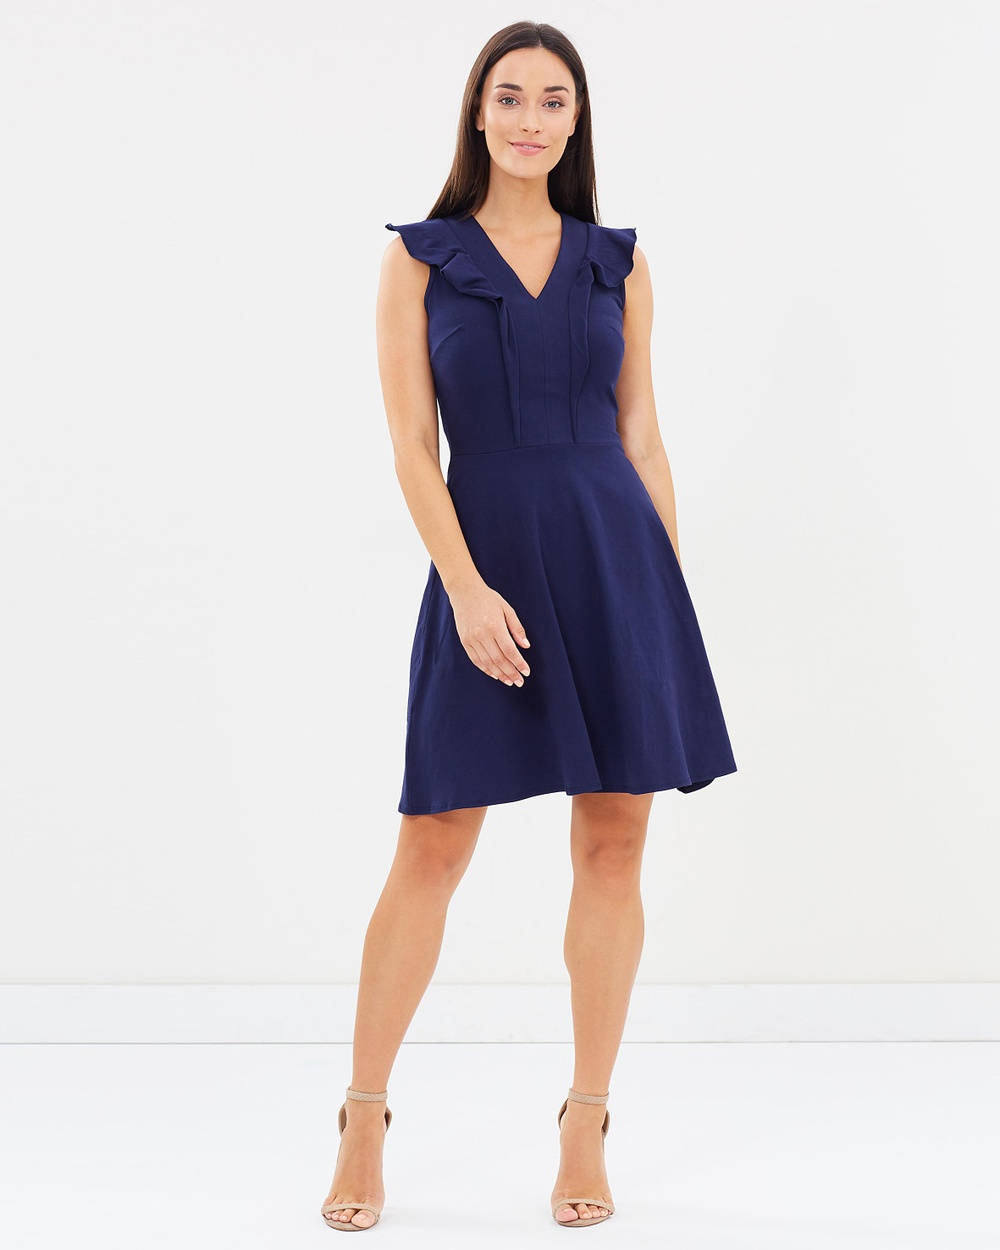 Dorothy Perkins V Neck Ruffle Fit And Flare Dress Dresses Navy Blue V-Neck Ruffle Fit And Flare Dress